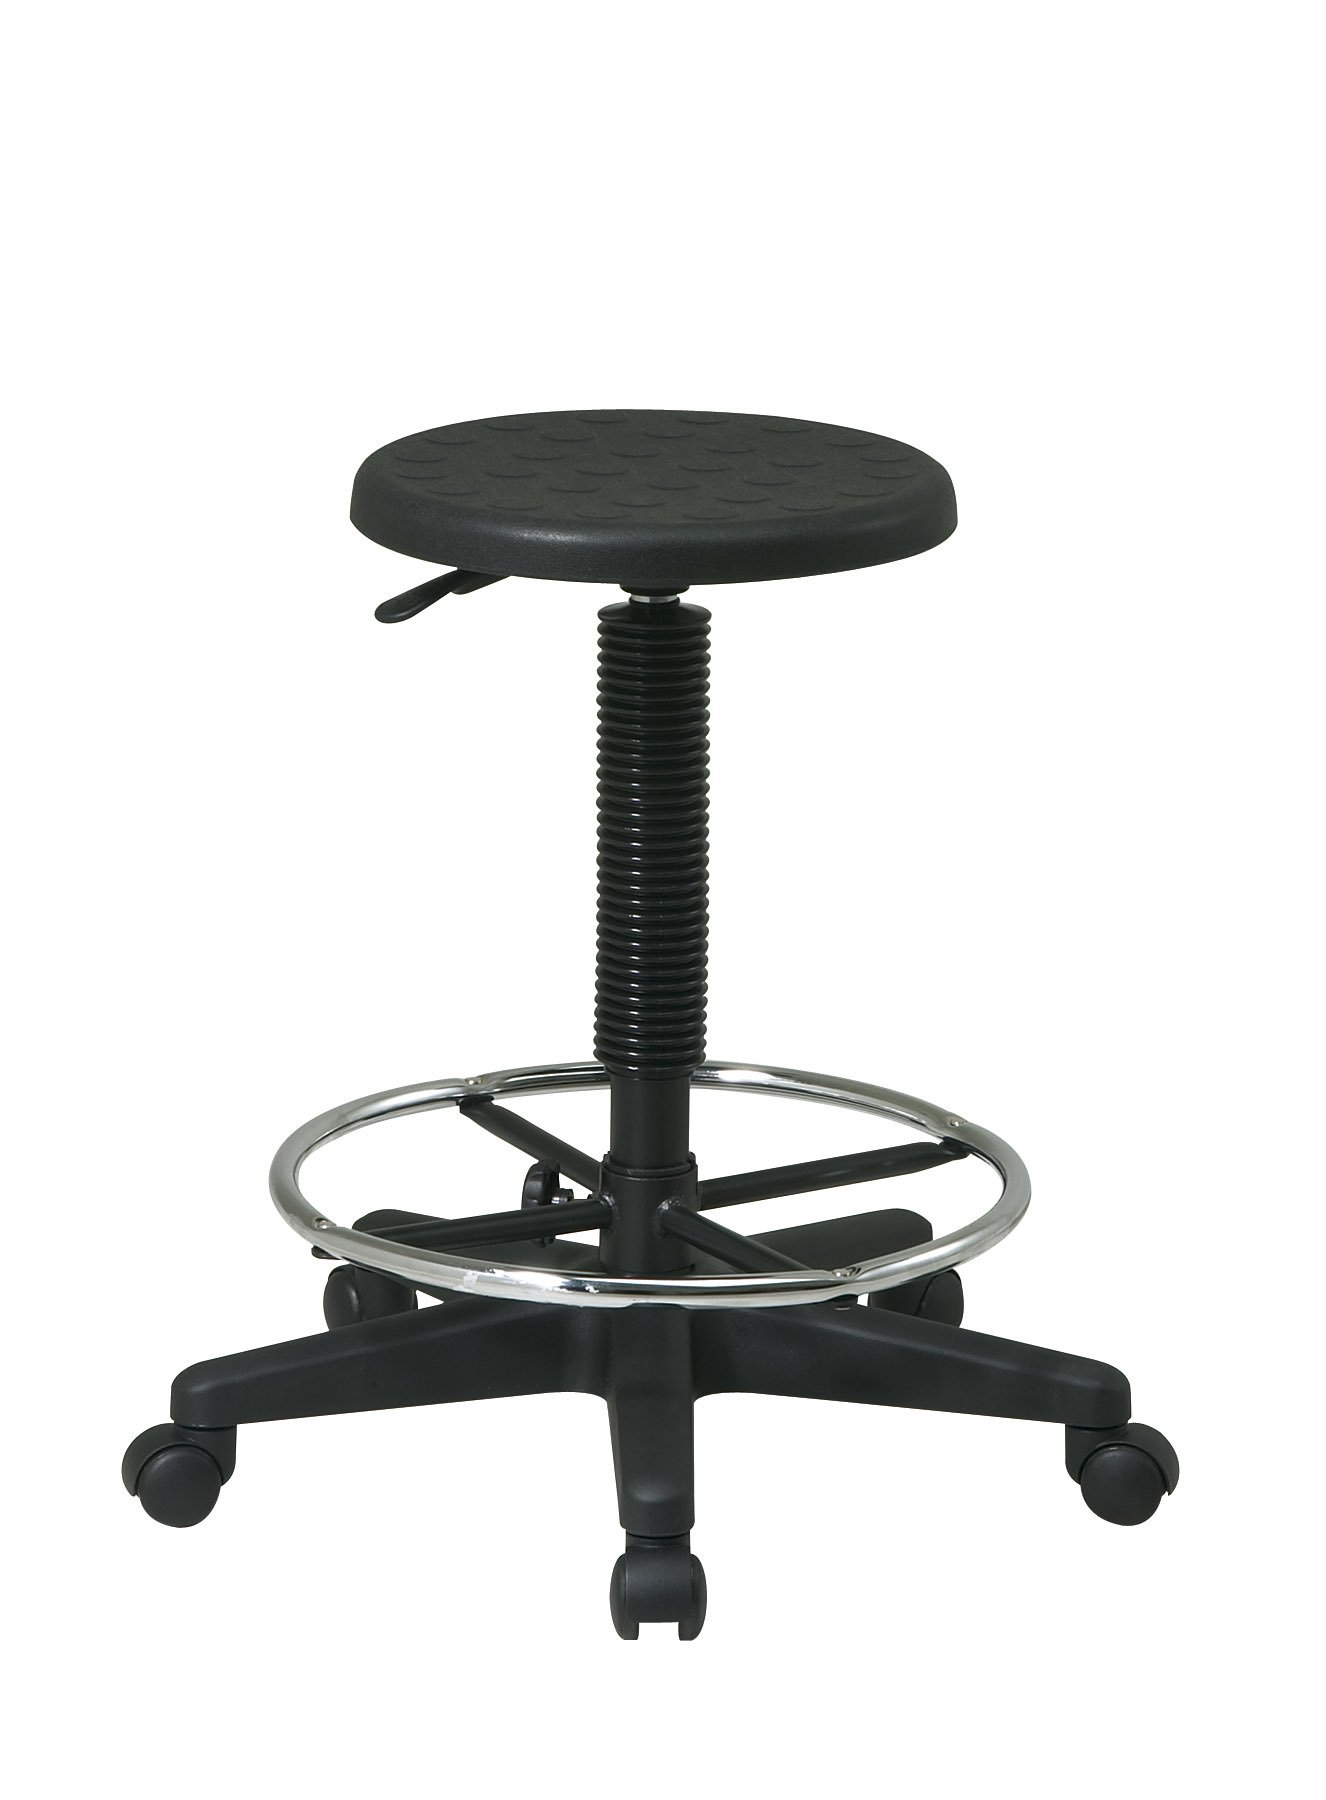 Office Star Urethane Intermediate Stool with Height Adjustment and Adjustable Footrest, Black